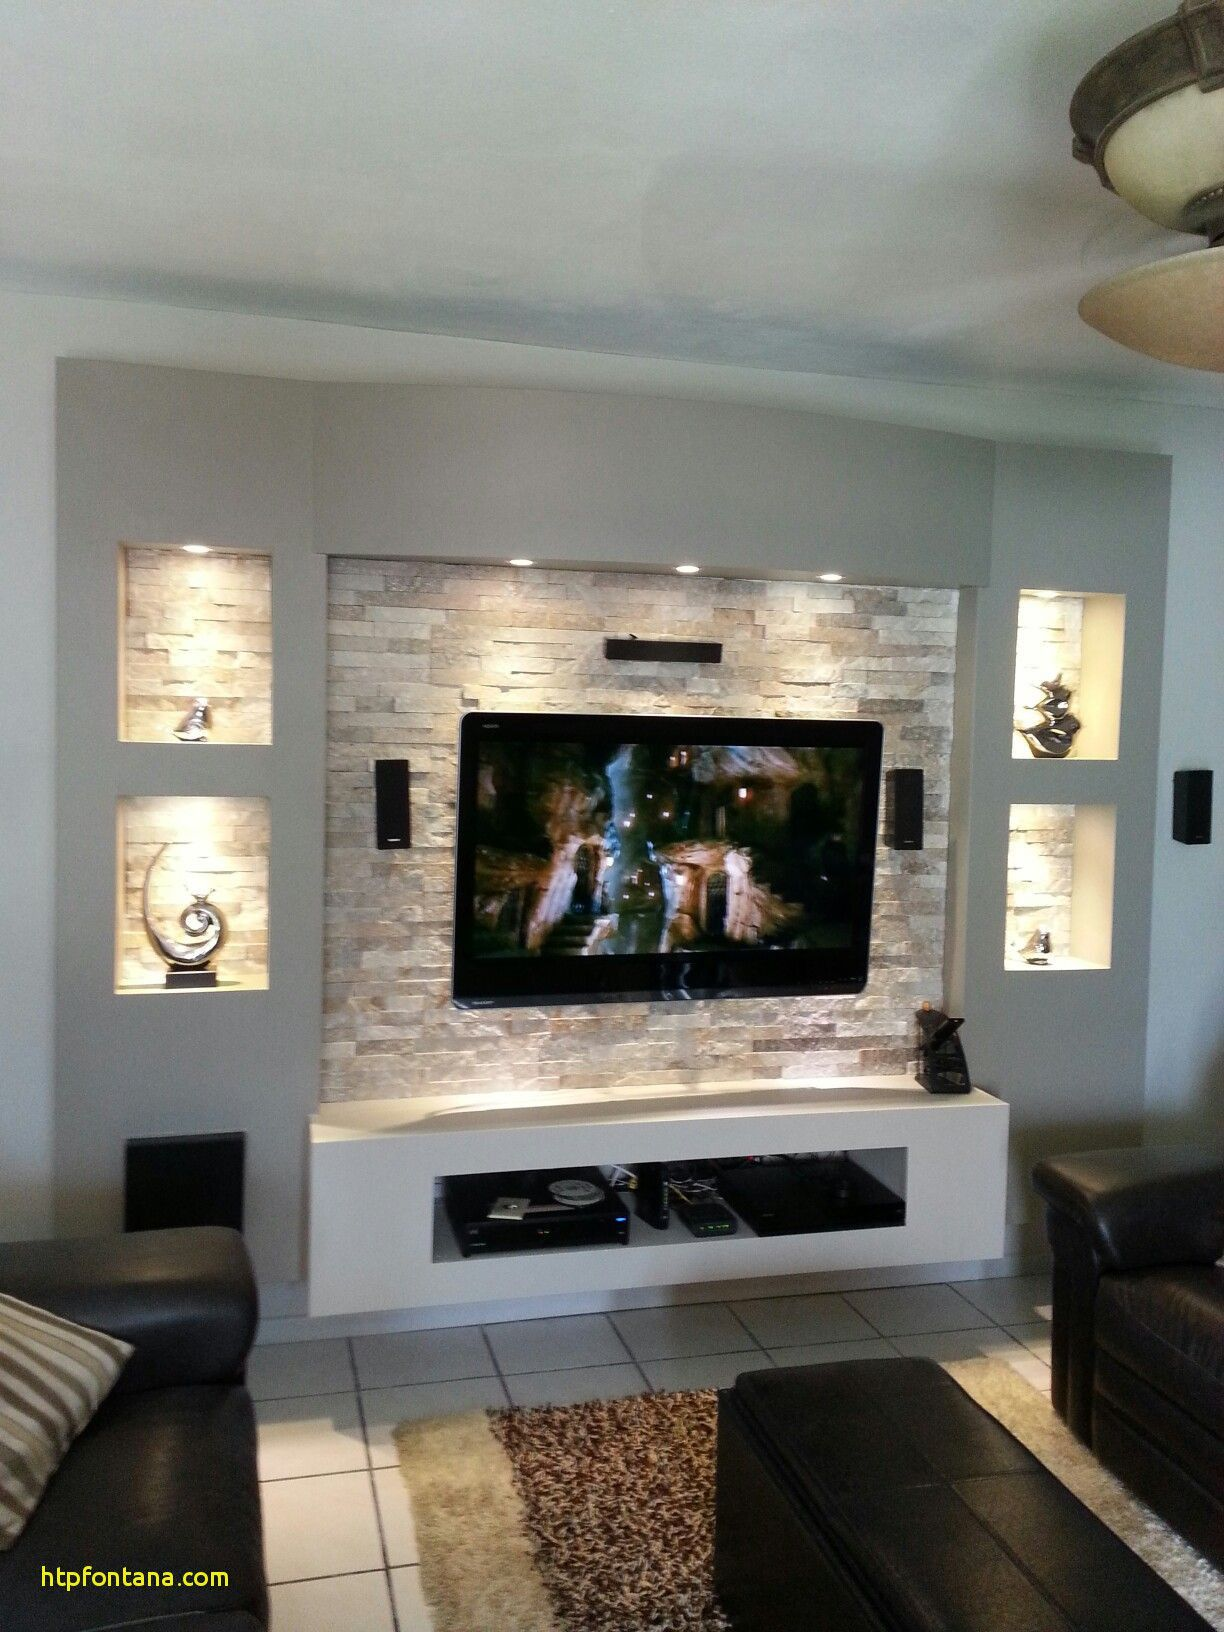 Lighting In Display Contrast In Textures Cheap Living Room Decor